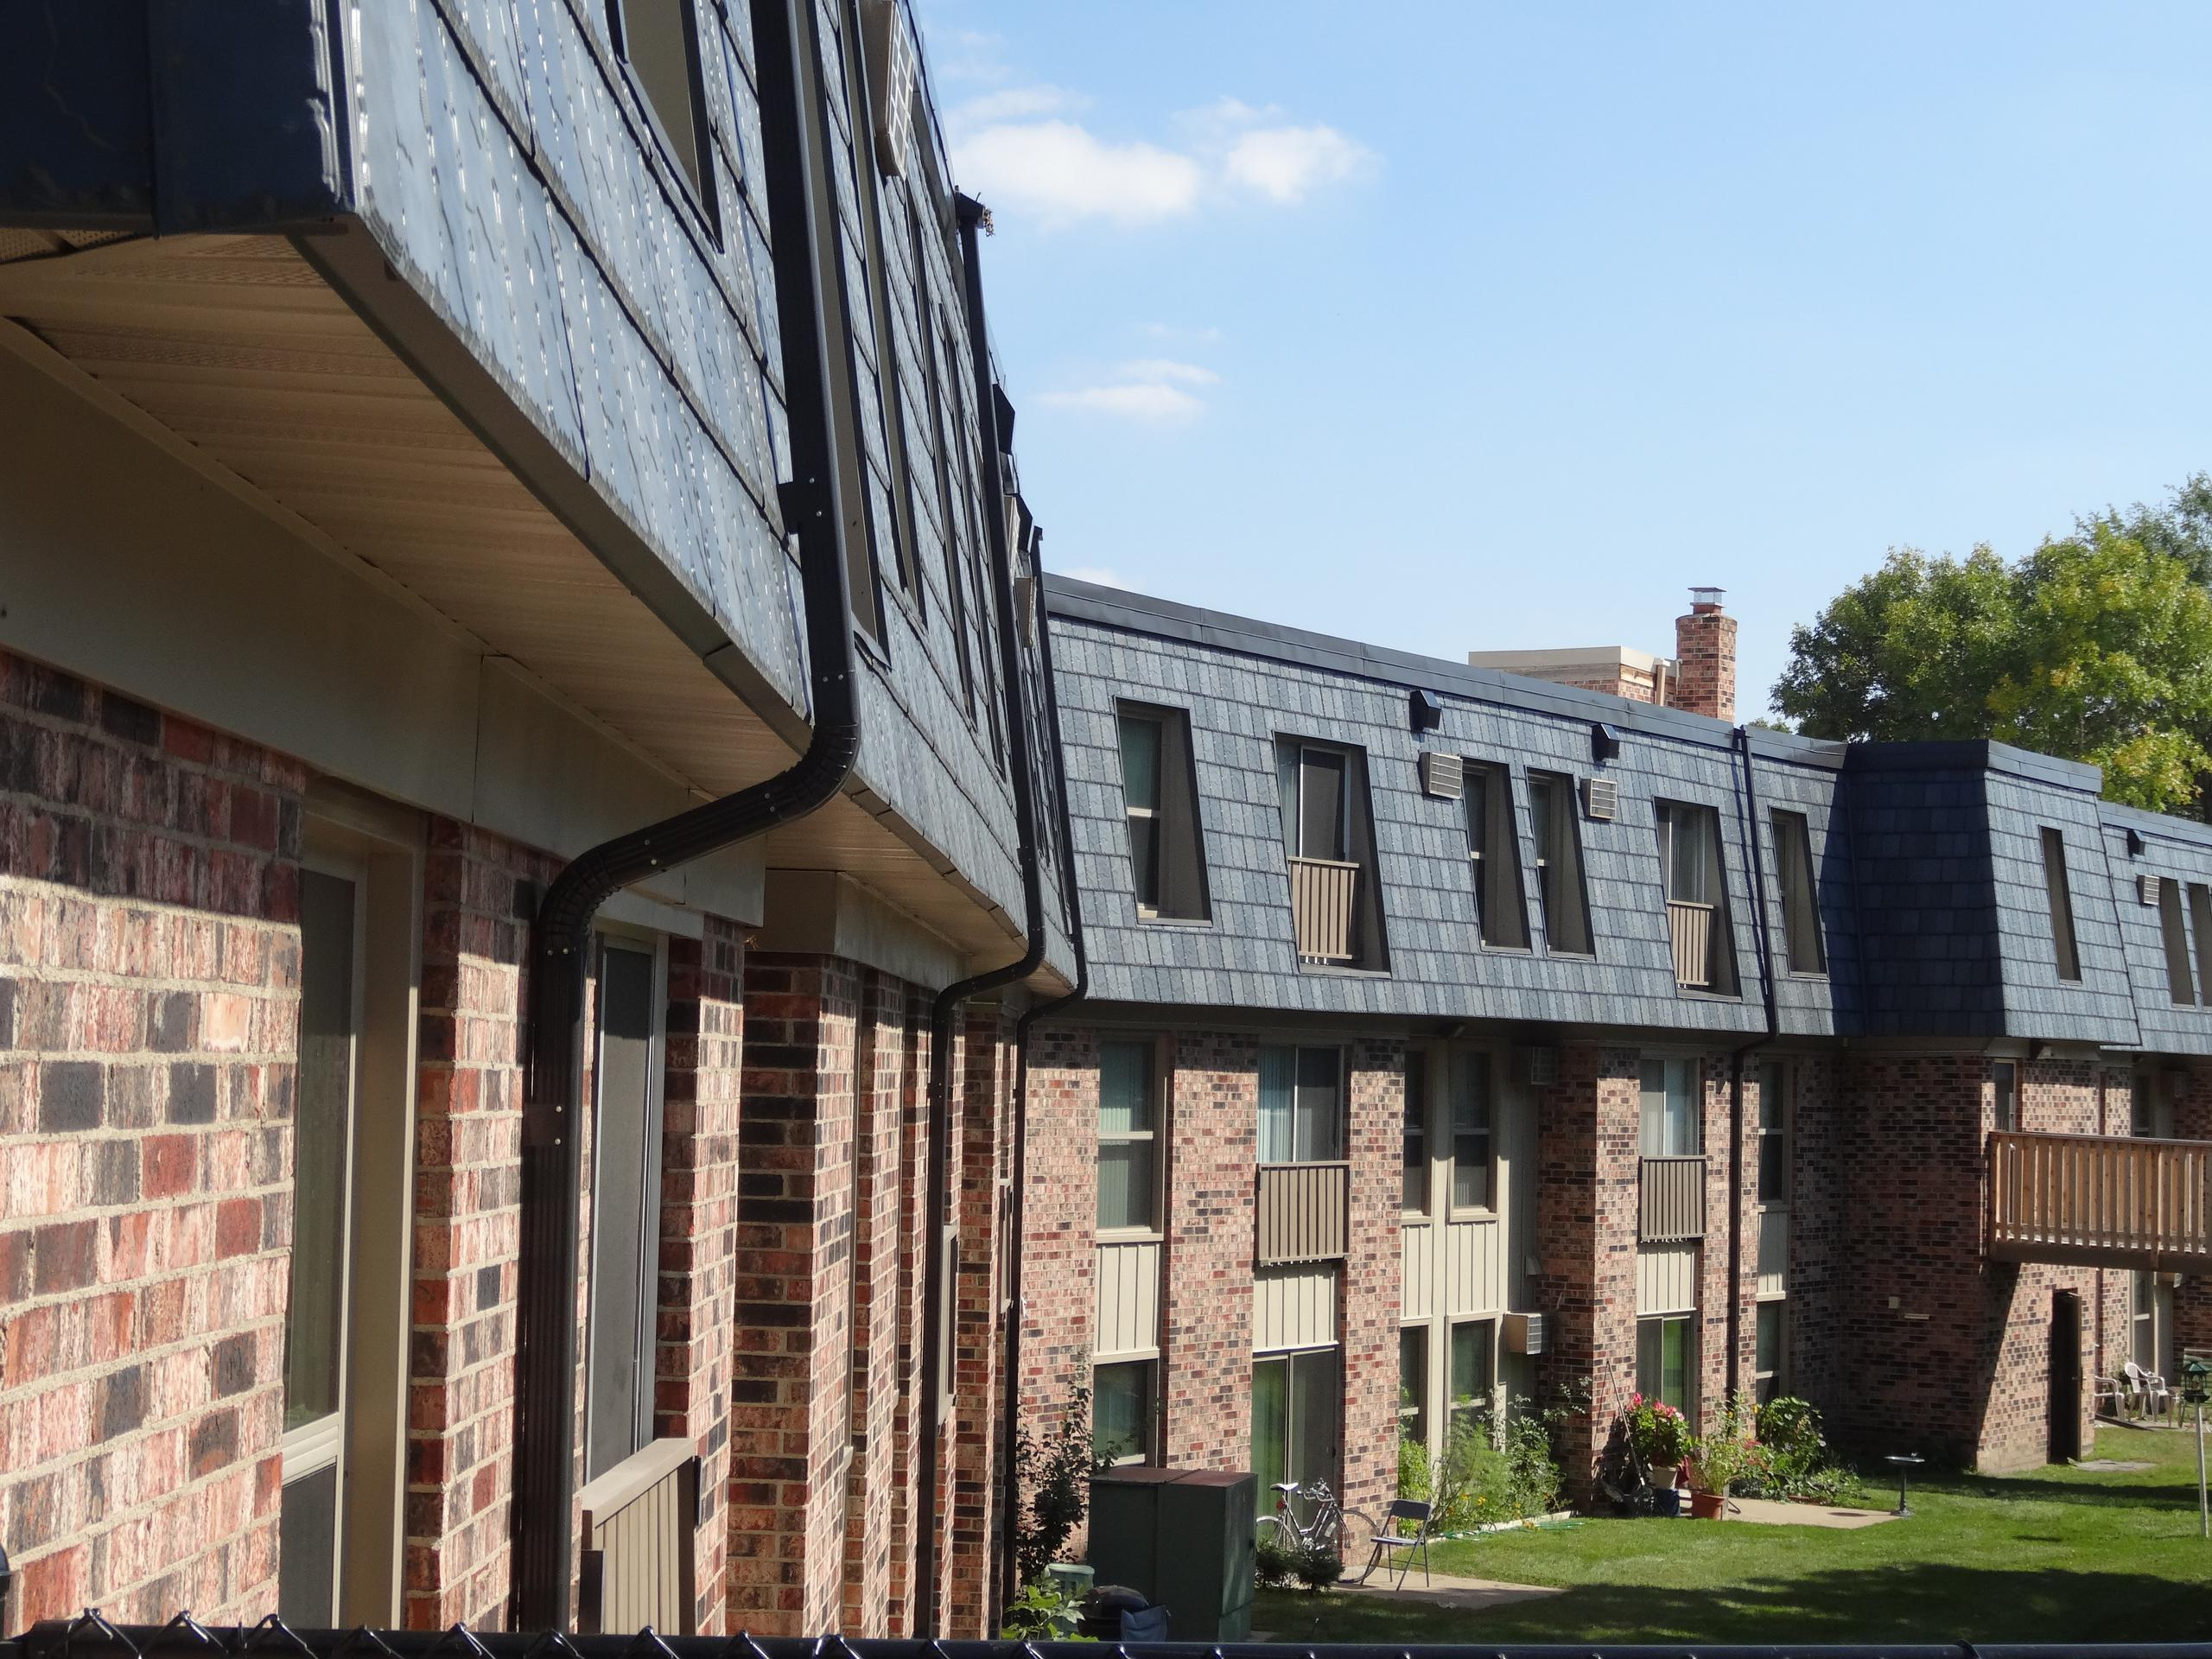 Arrowline Slate Stone Blend from EDCO gives this apartment building in Minnesota a distinctive look.